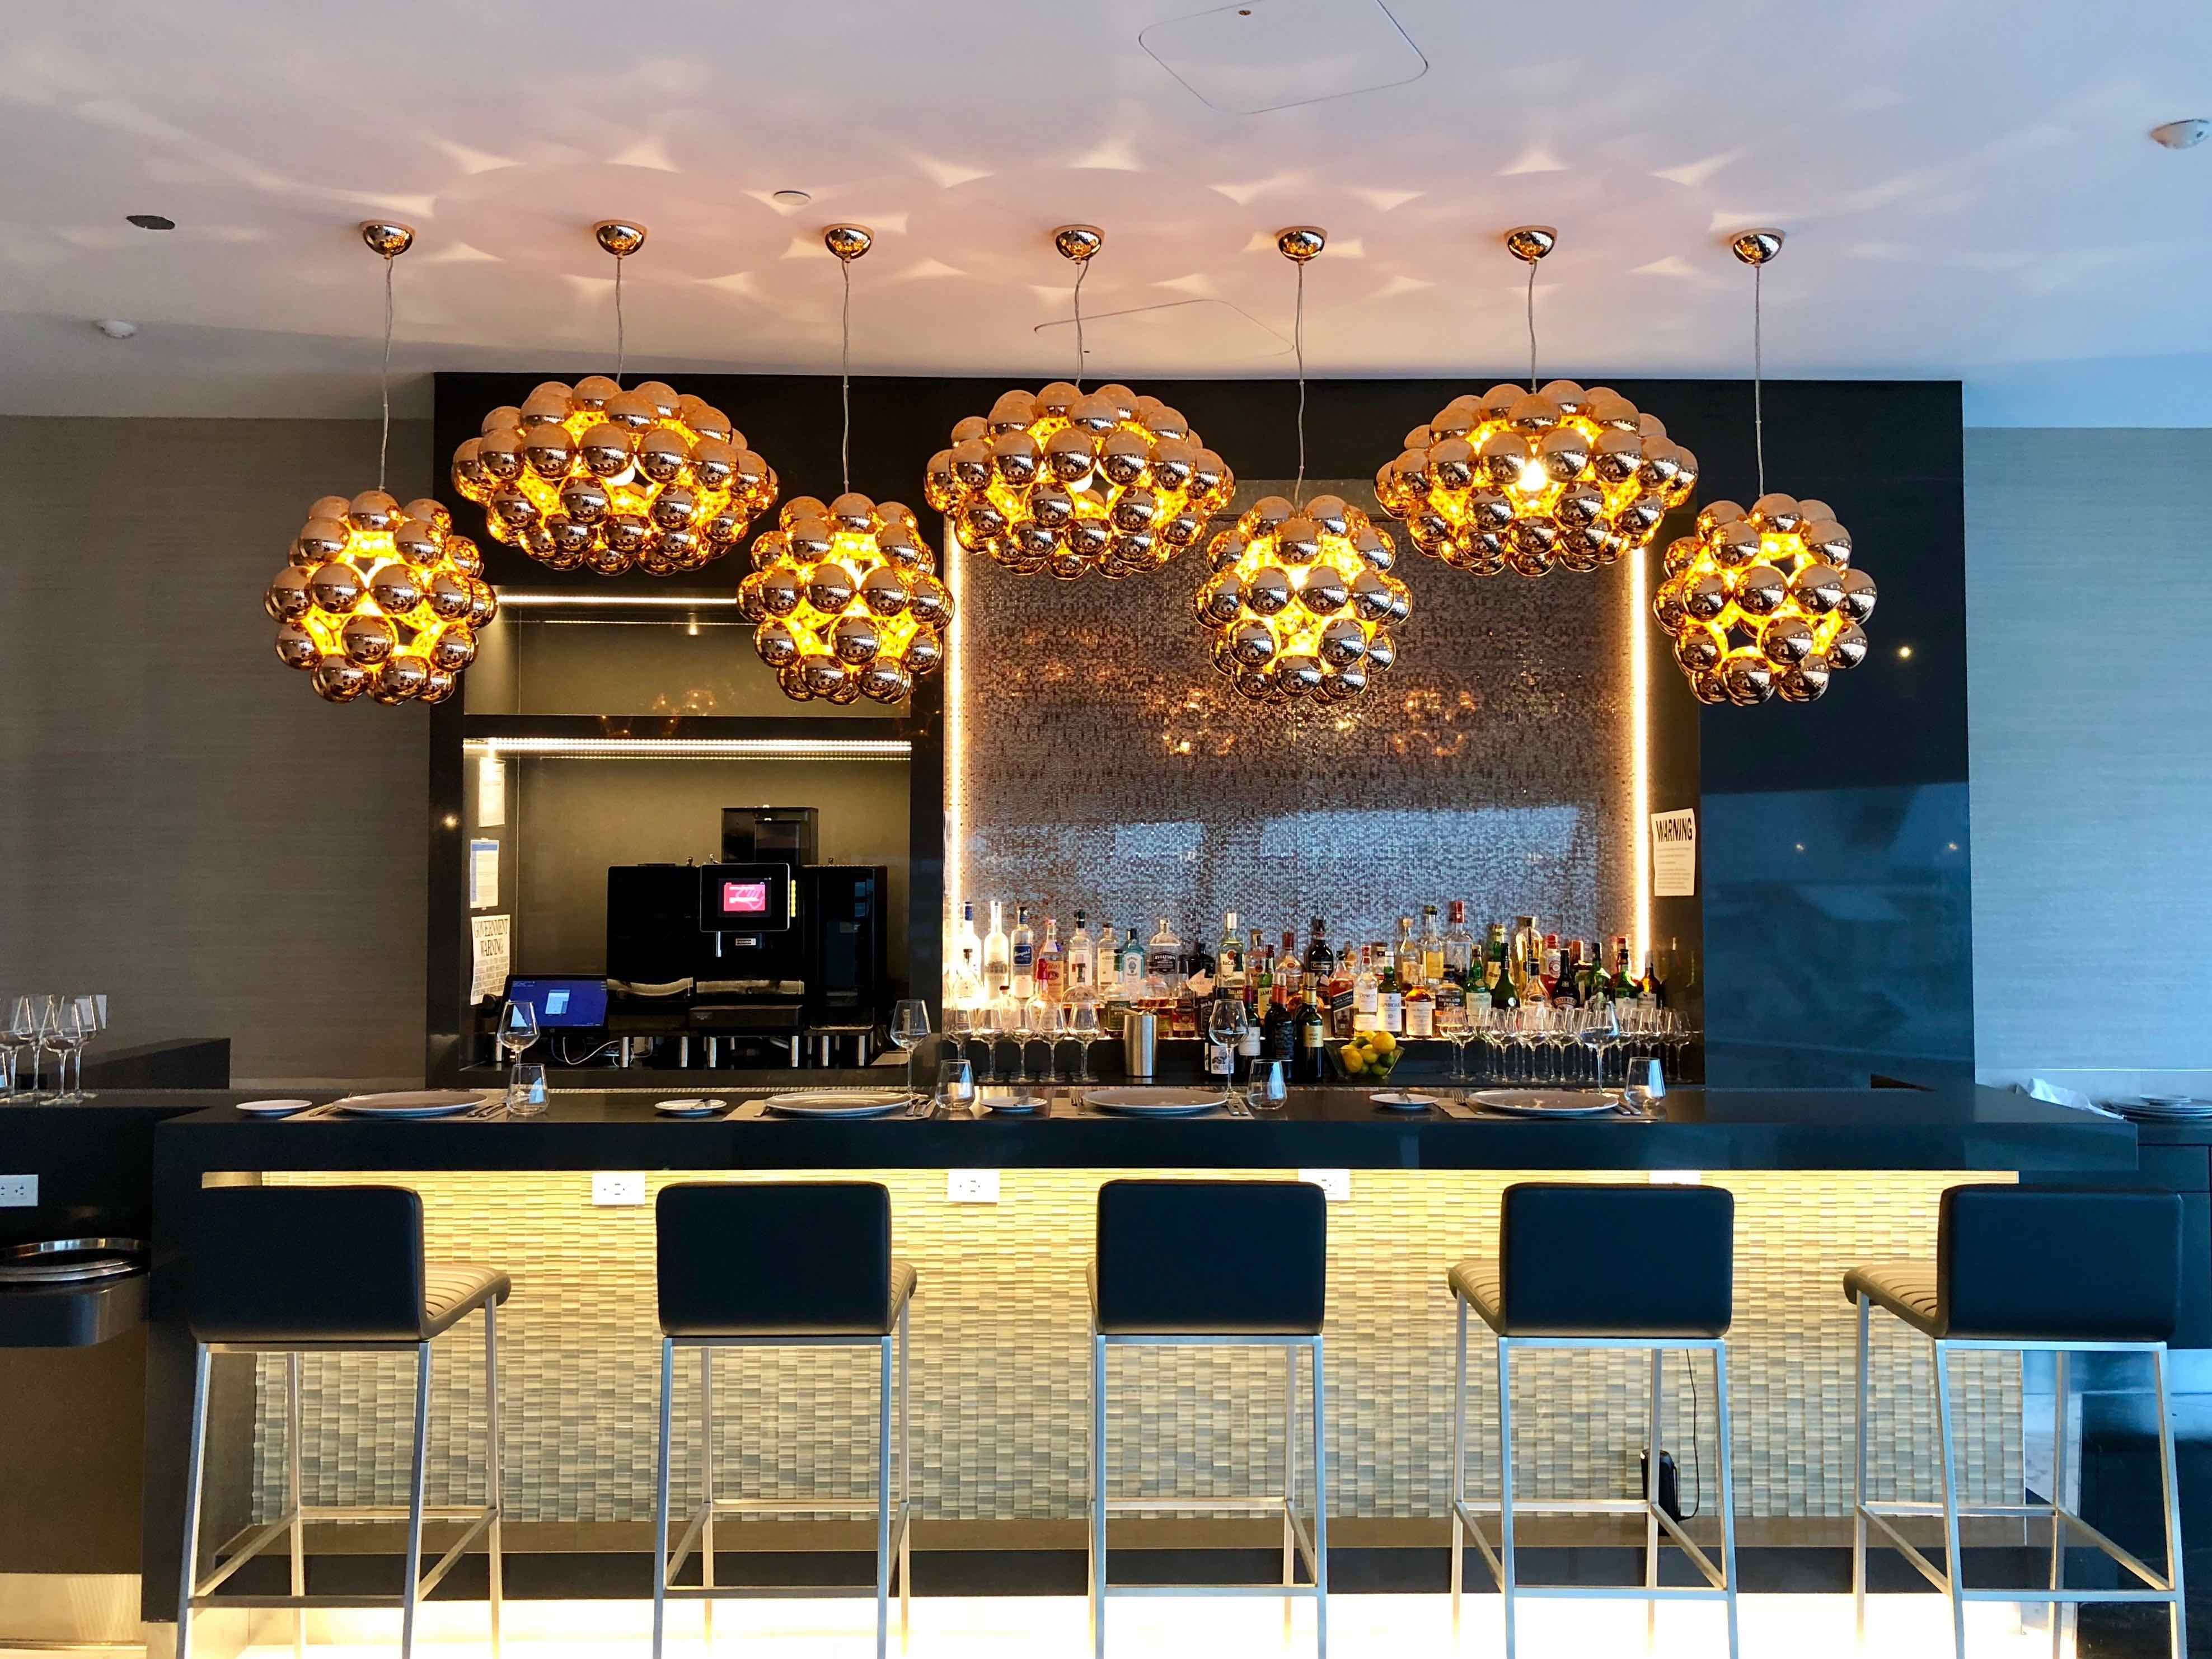 American Airlines Flagship Lounge Miami - Flagship First dining